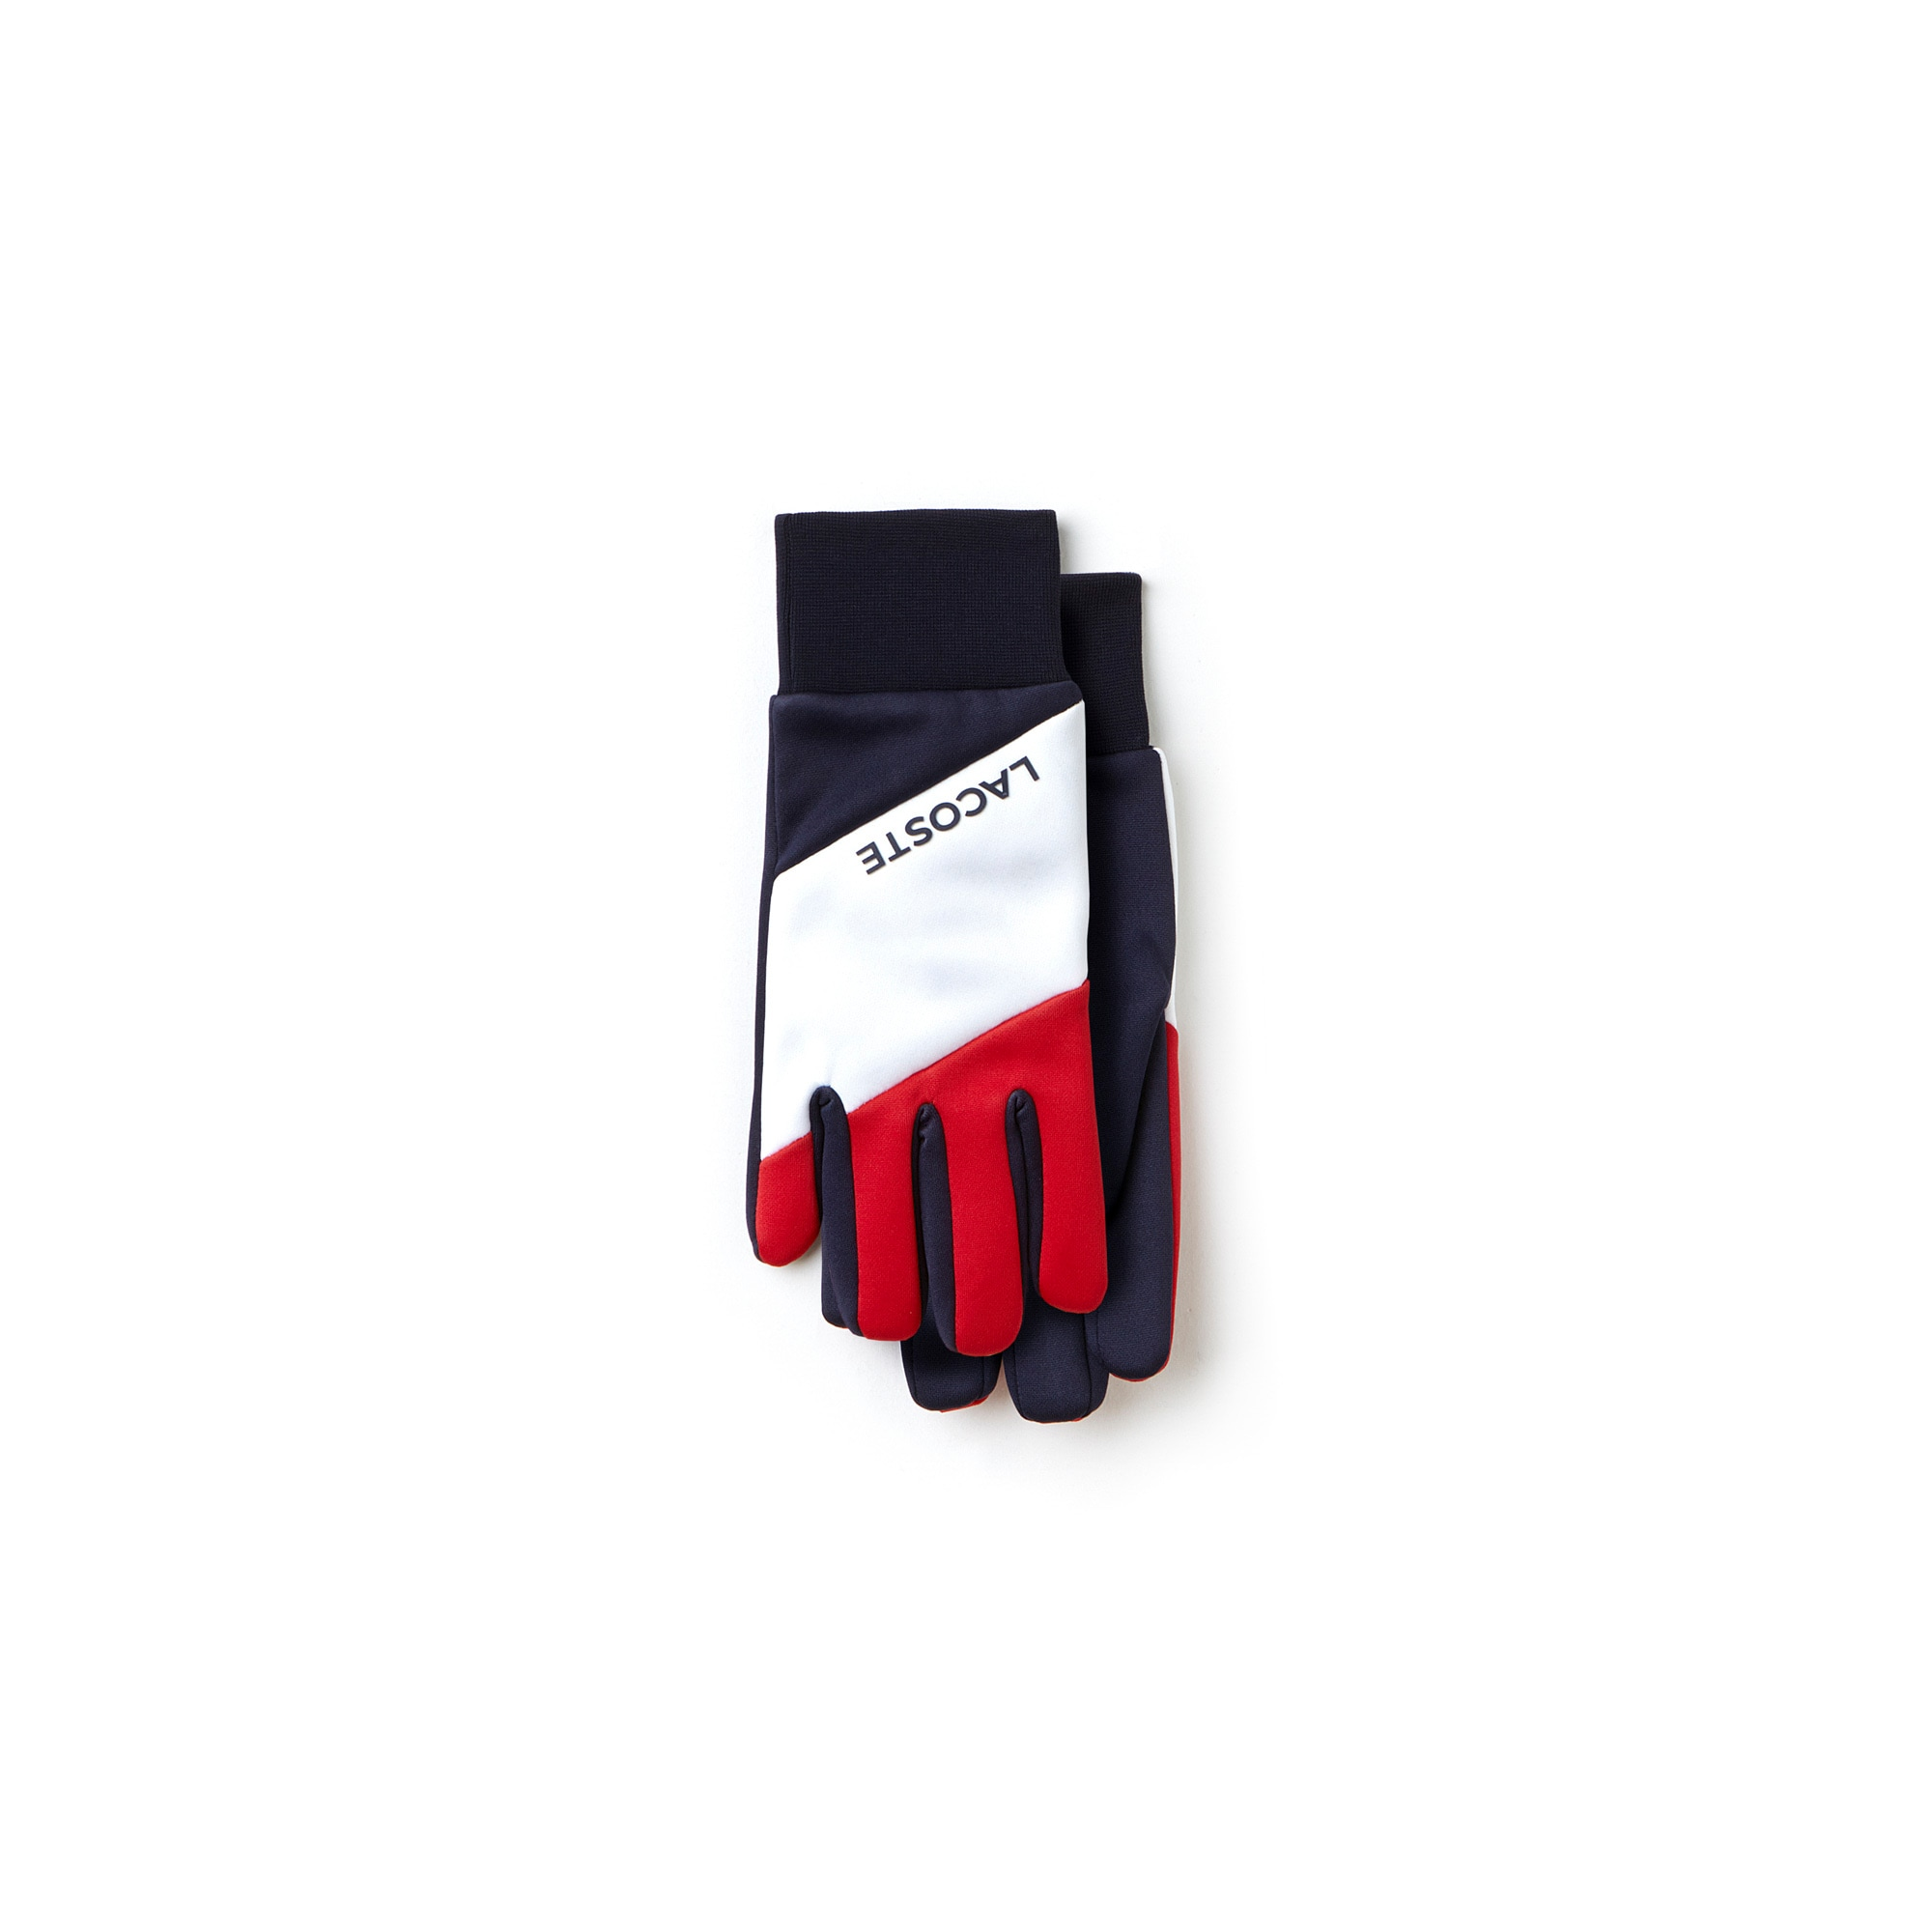 Men's French Sporting Spirit Edition Colorblock Polar Fleece Gloves